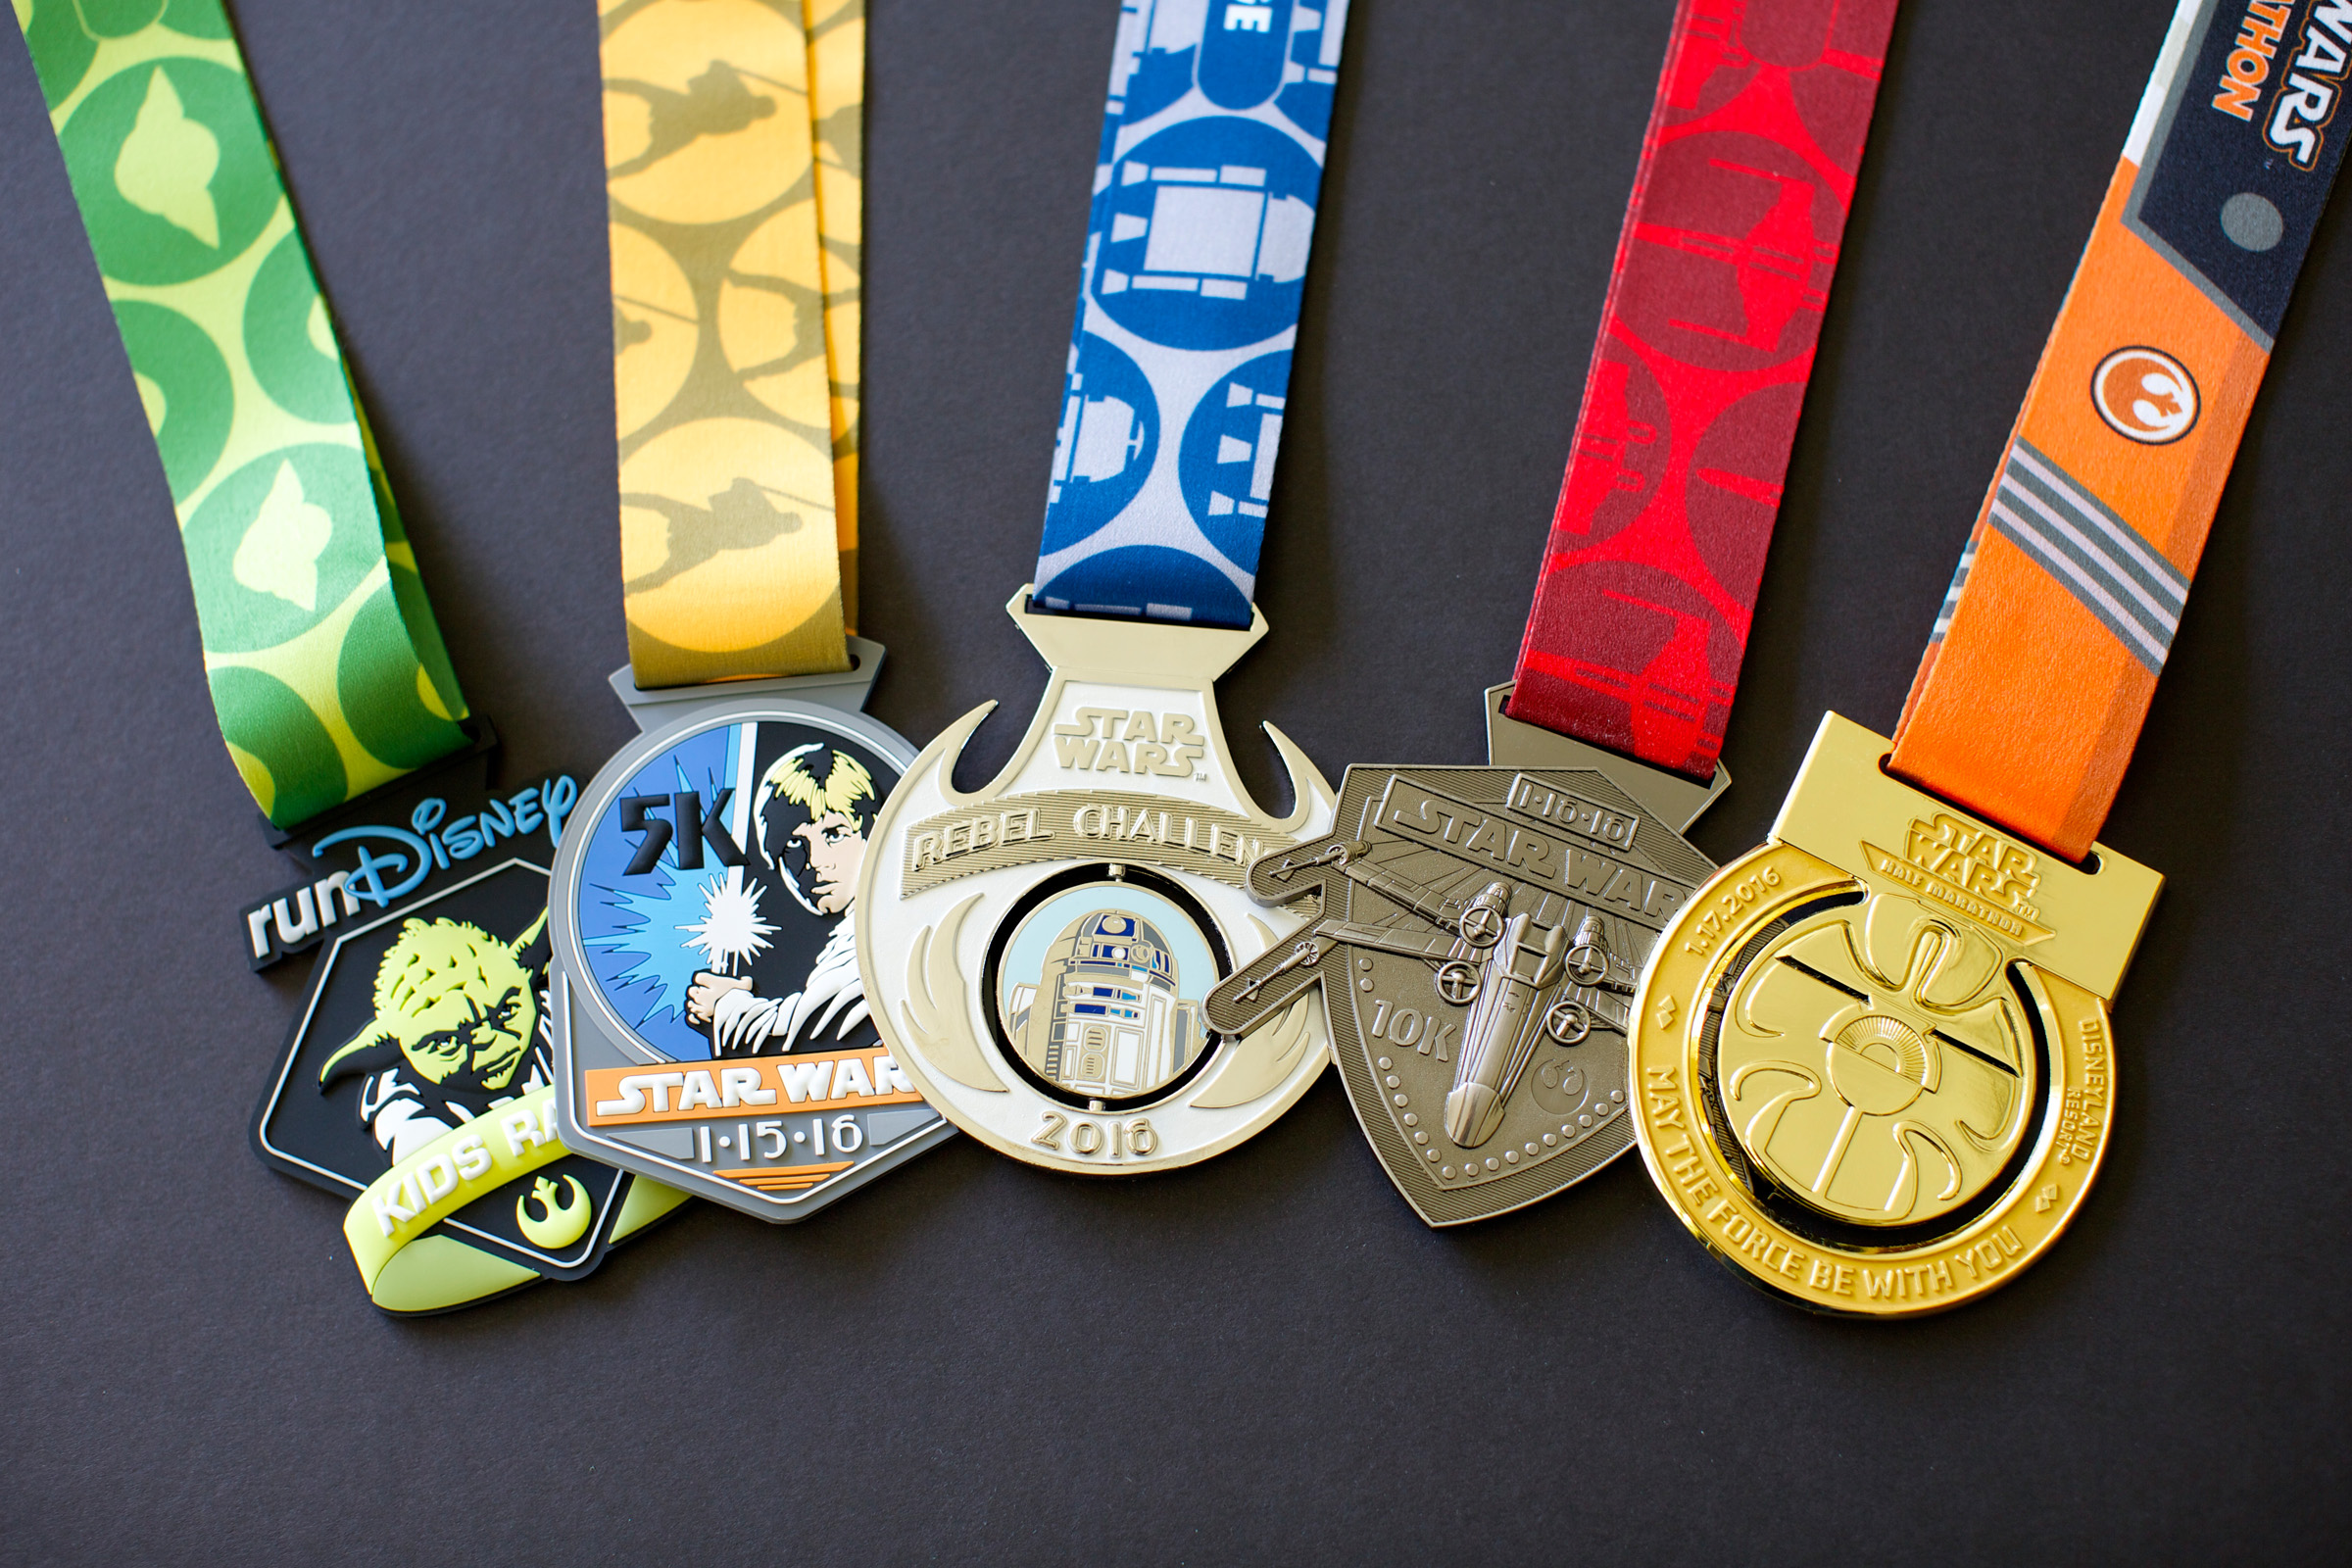 Spartan Race Season Pass. Choose from the Trifecta, Open Season, or Elite Season Passes and test every ounce of your body and mind. Regardless your choice or package, receive a free spectator pass, free bag check, and guaranteed entry to all events, no matter what!